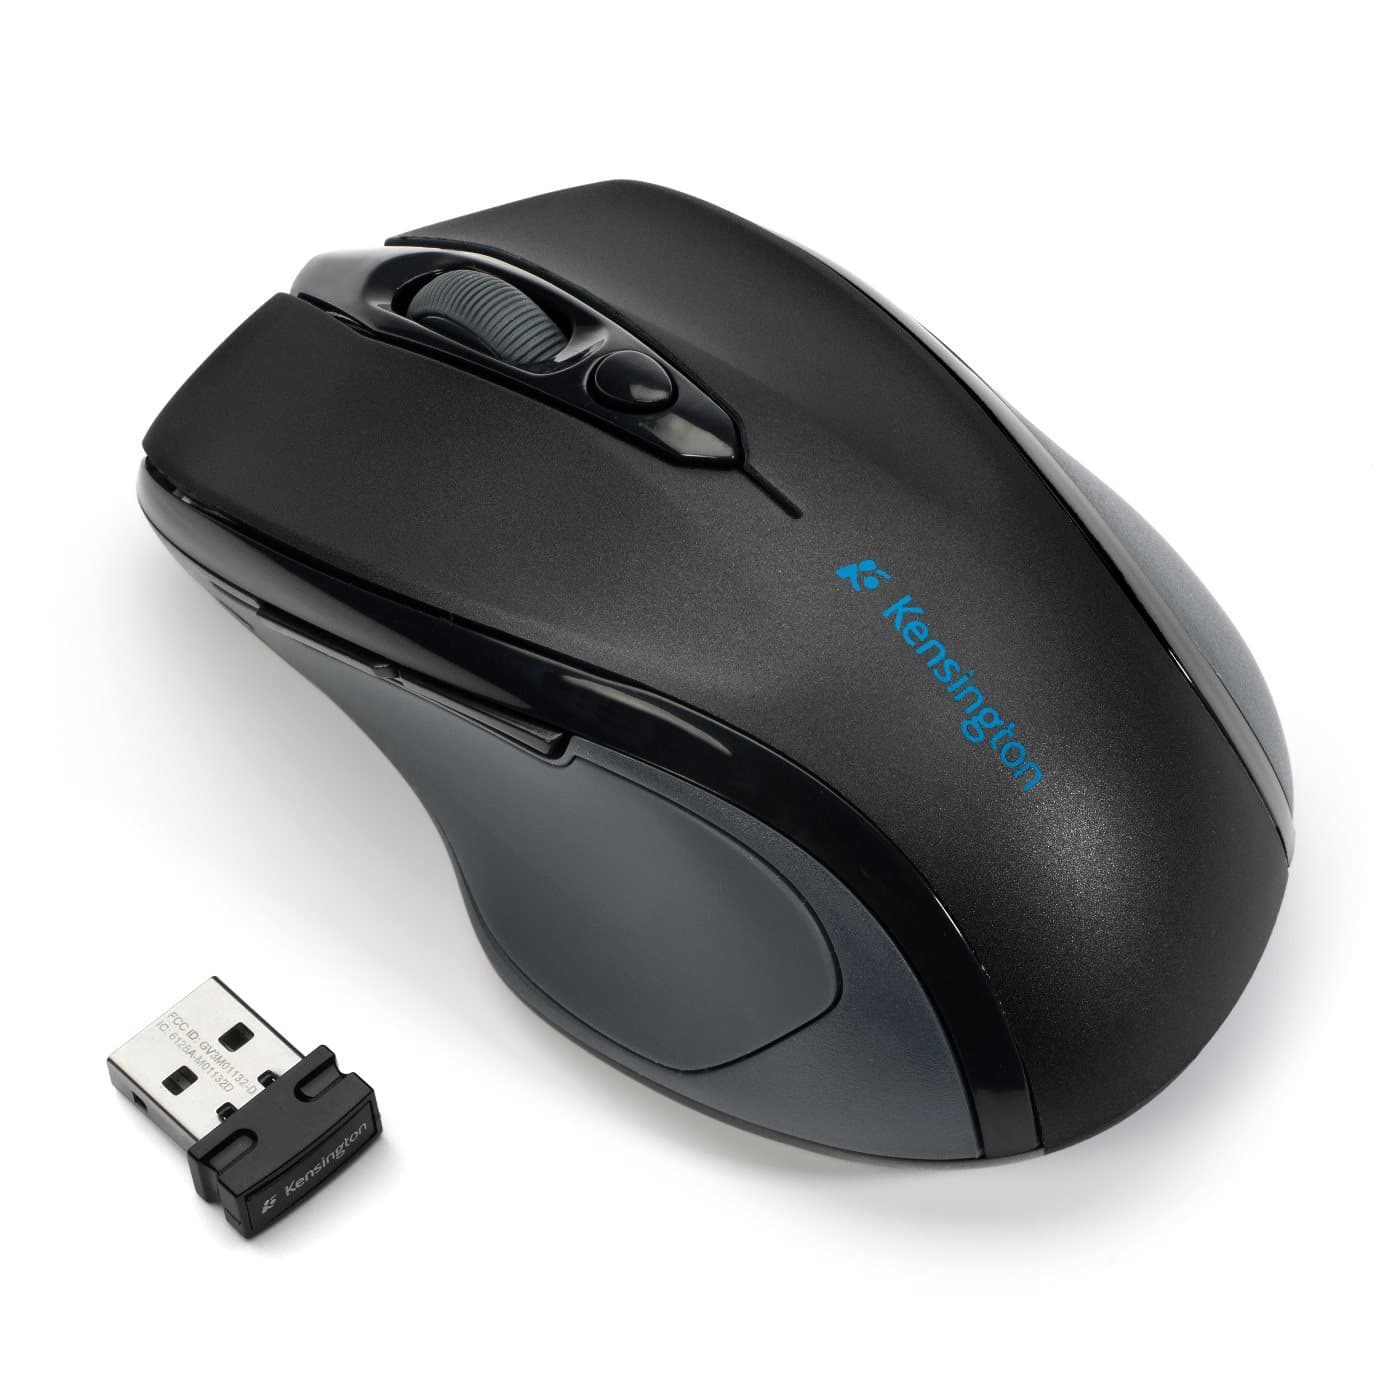 Kensington - Products - Control - Mice - Pro Fit® Wireless Mid-Size ...